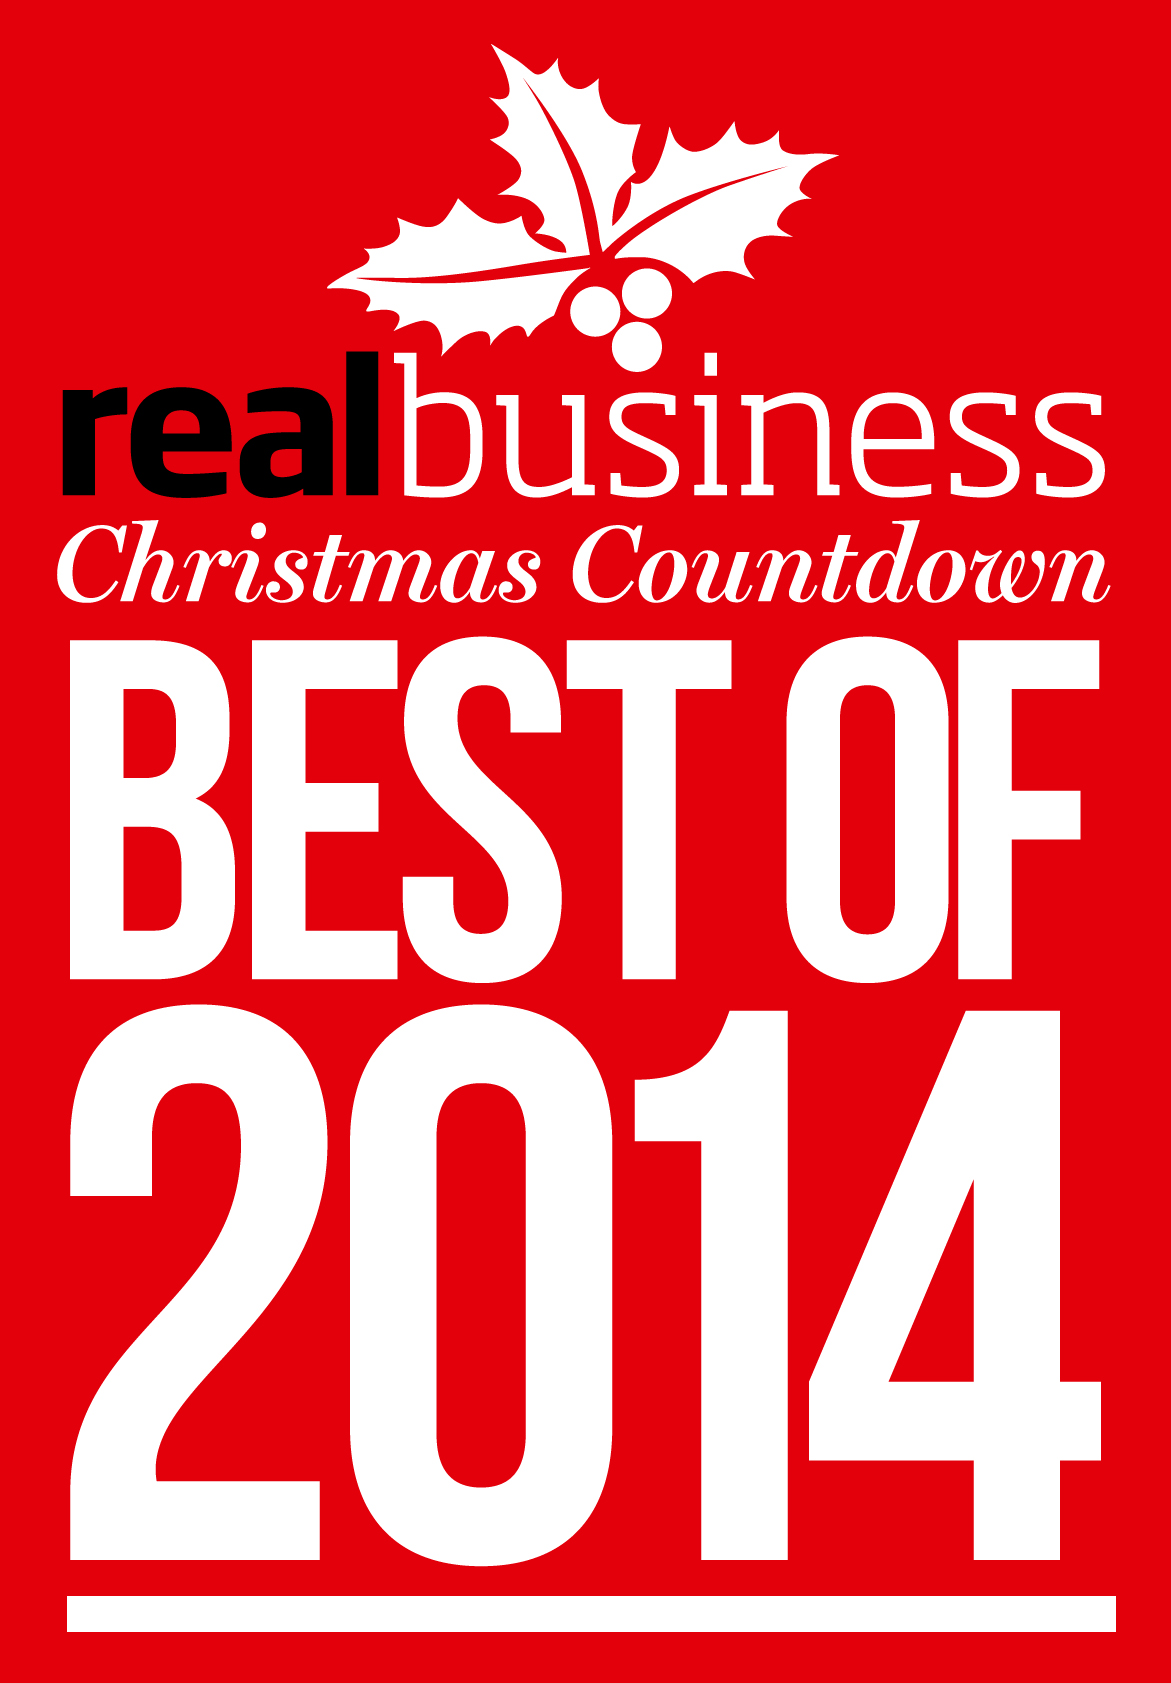 Real Business Christmas Countdown: The Best of 2014: 21 December